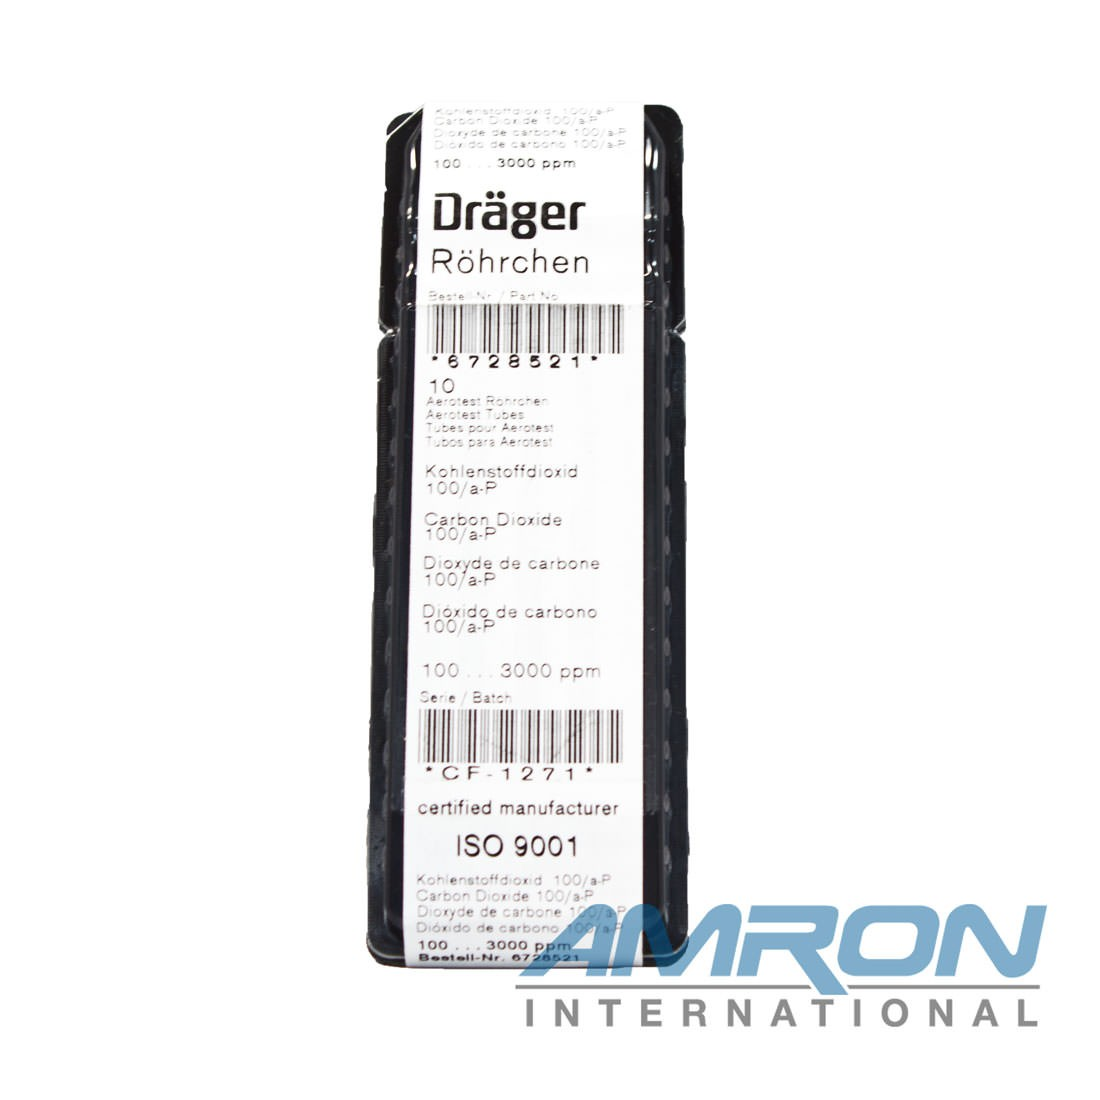 Draeger Detector Tube CO2 - 100/A-P 100-3000PPM 6728521